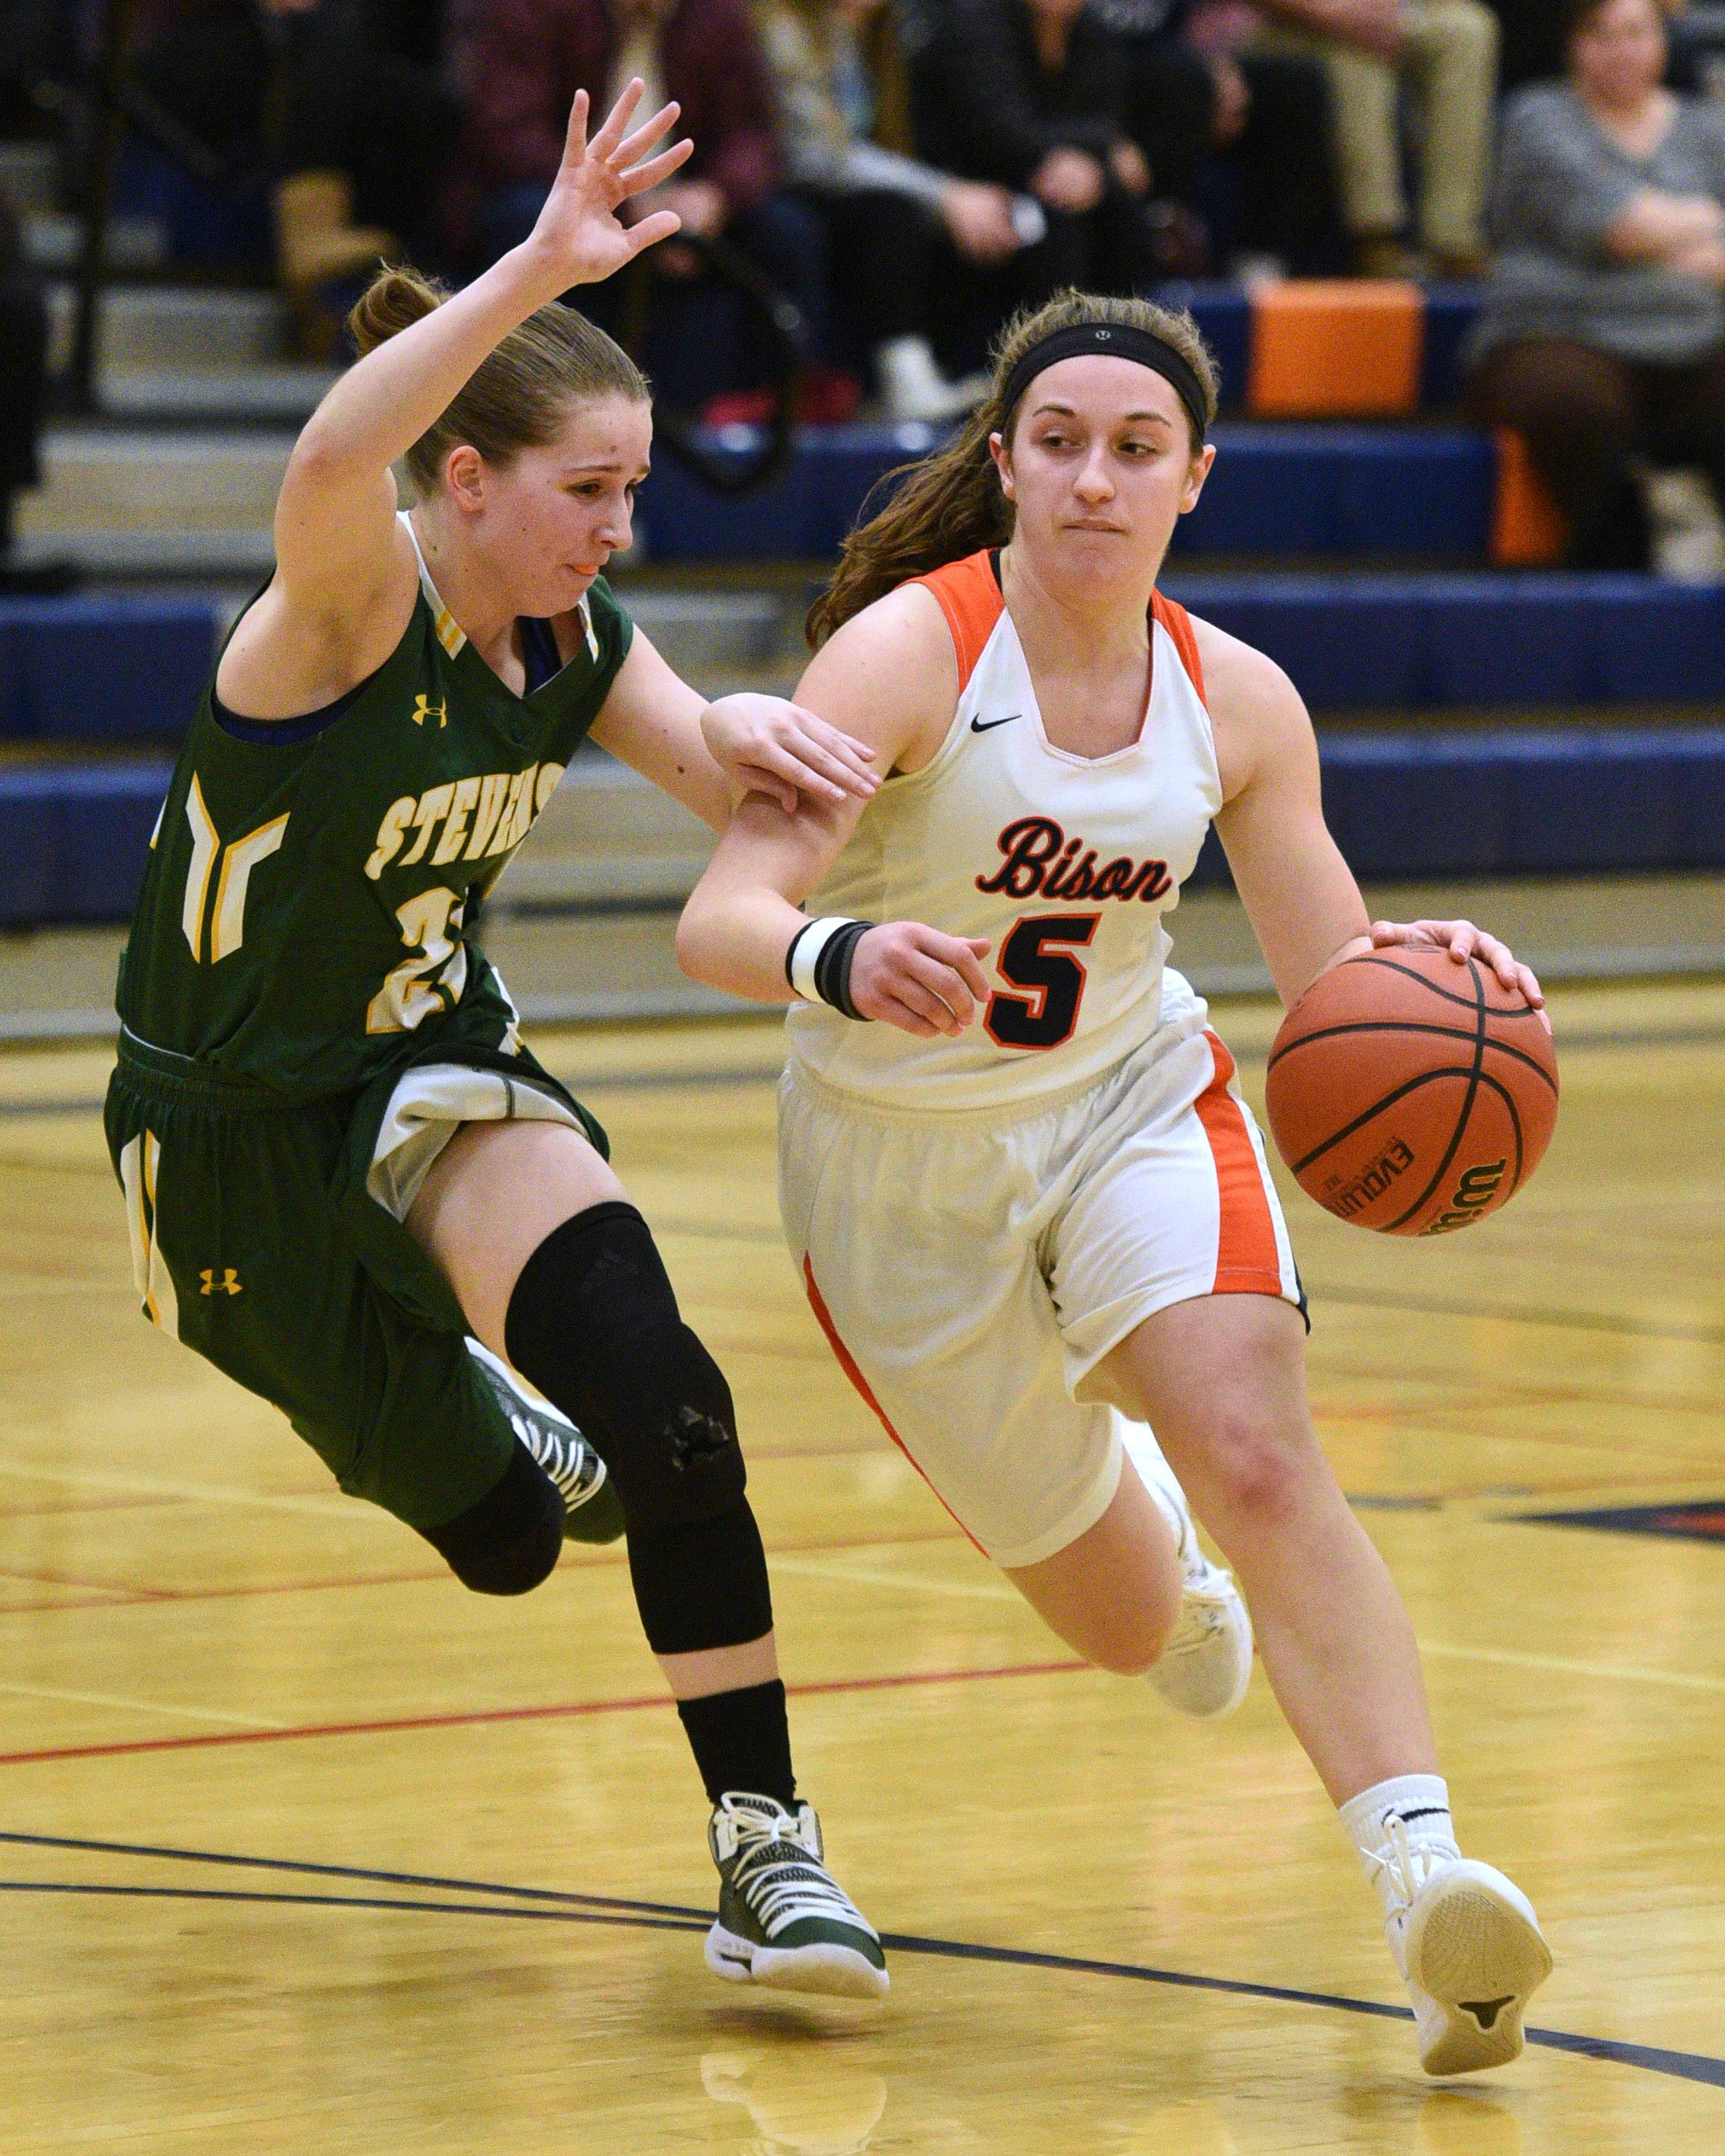 Stevenson's Lydia Lueck, left, pressures Buffalo Grove's Jackie Bickhaus (5) during Monday's girls basketball game in Buffalo Grove.